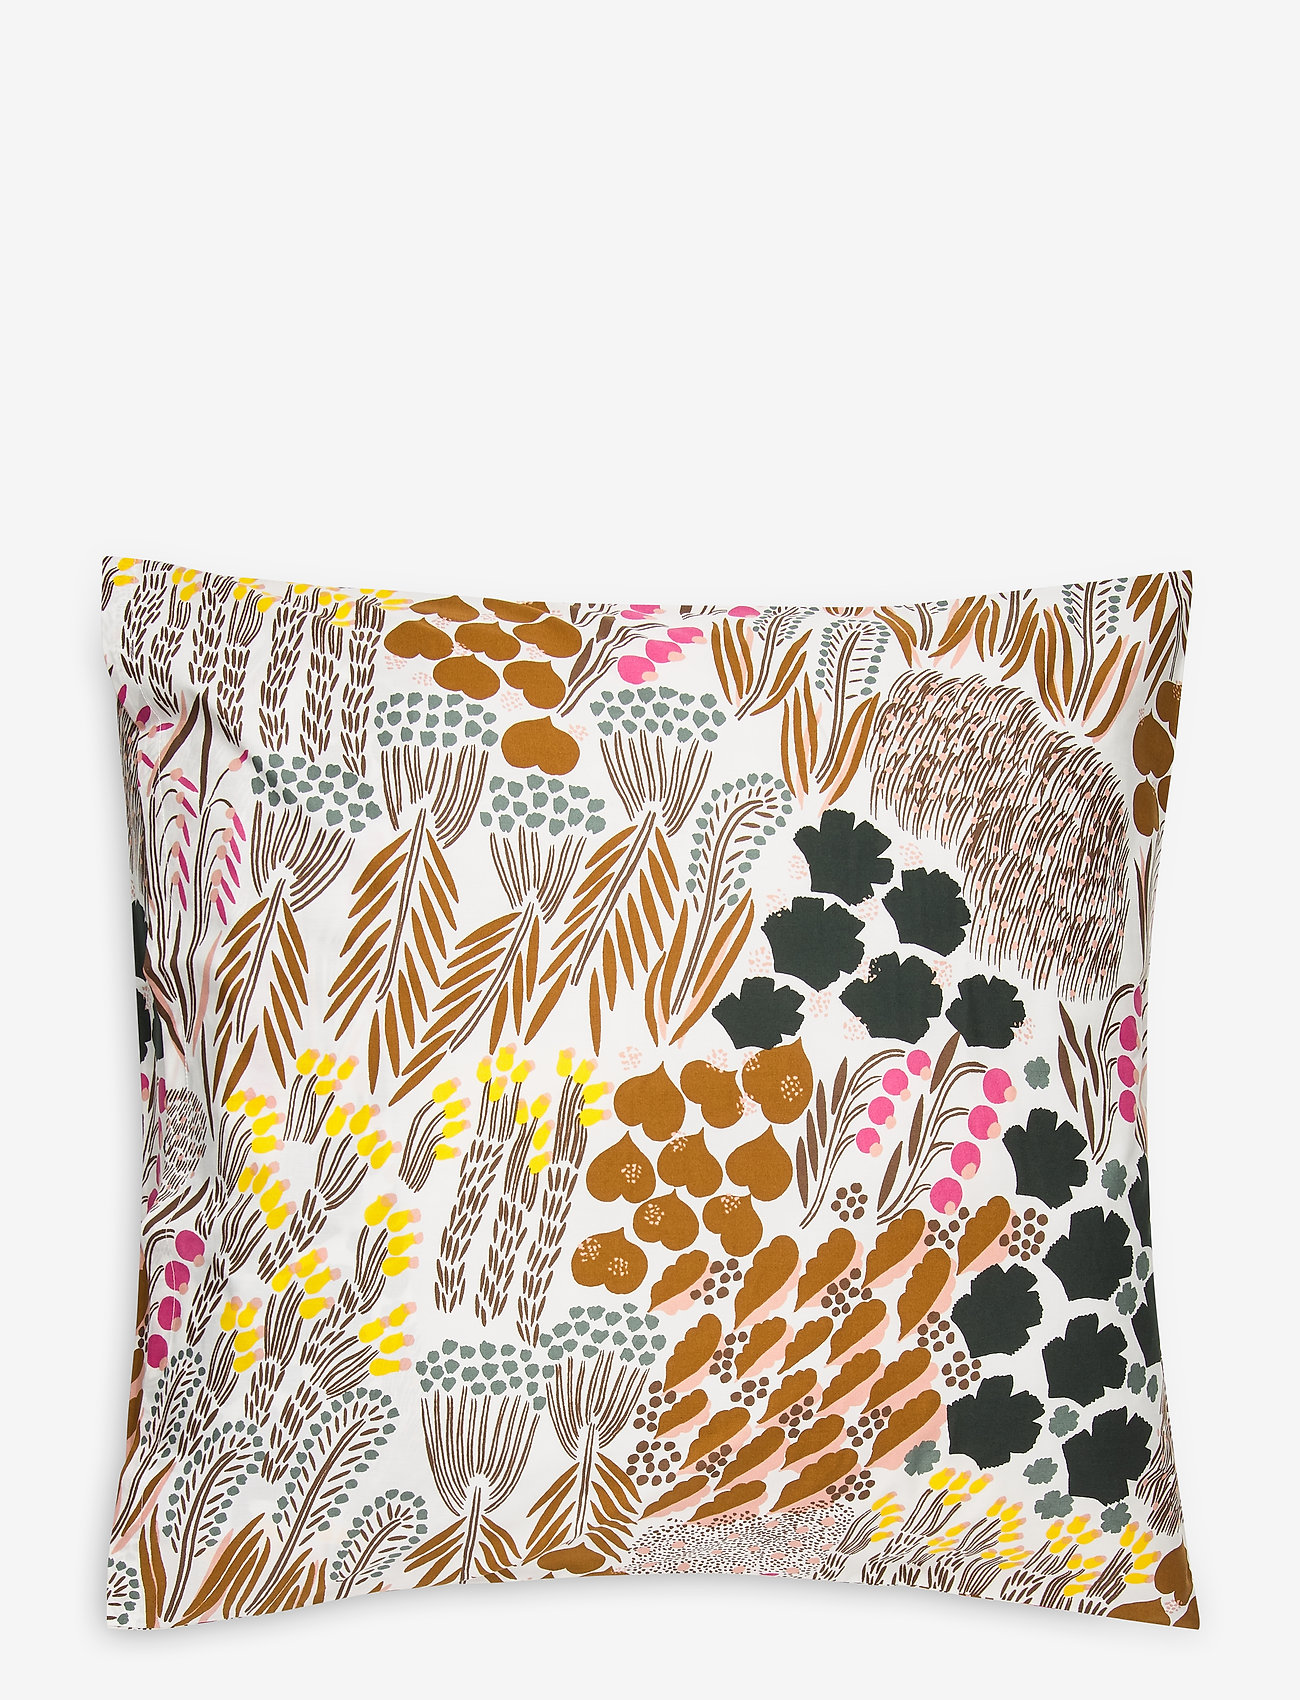 Marimekko Home PIENI LETTO PILLOW CASE- Salon XI61Yekt iEiBJ VwdlSth2